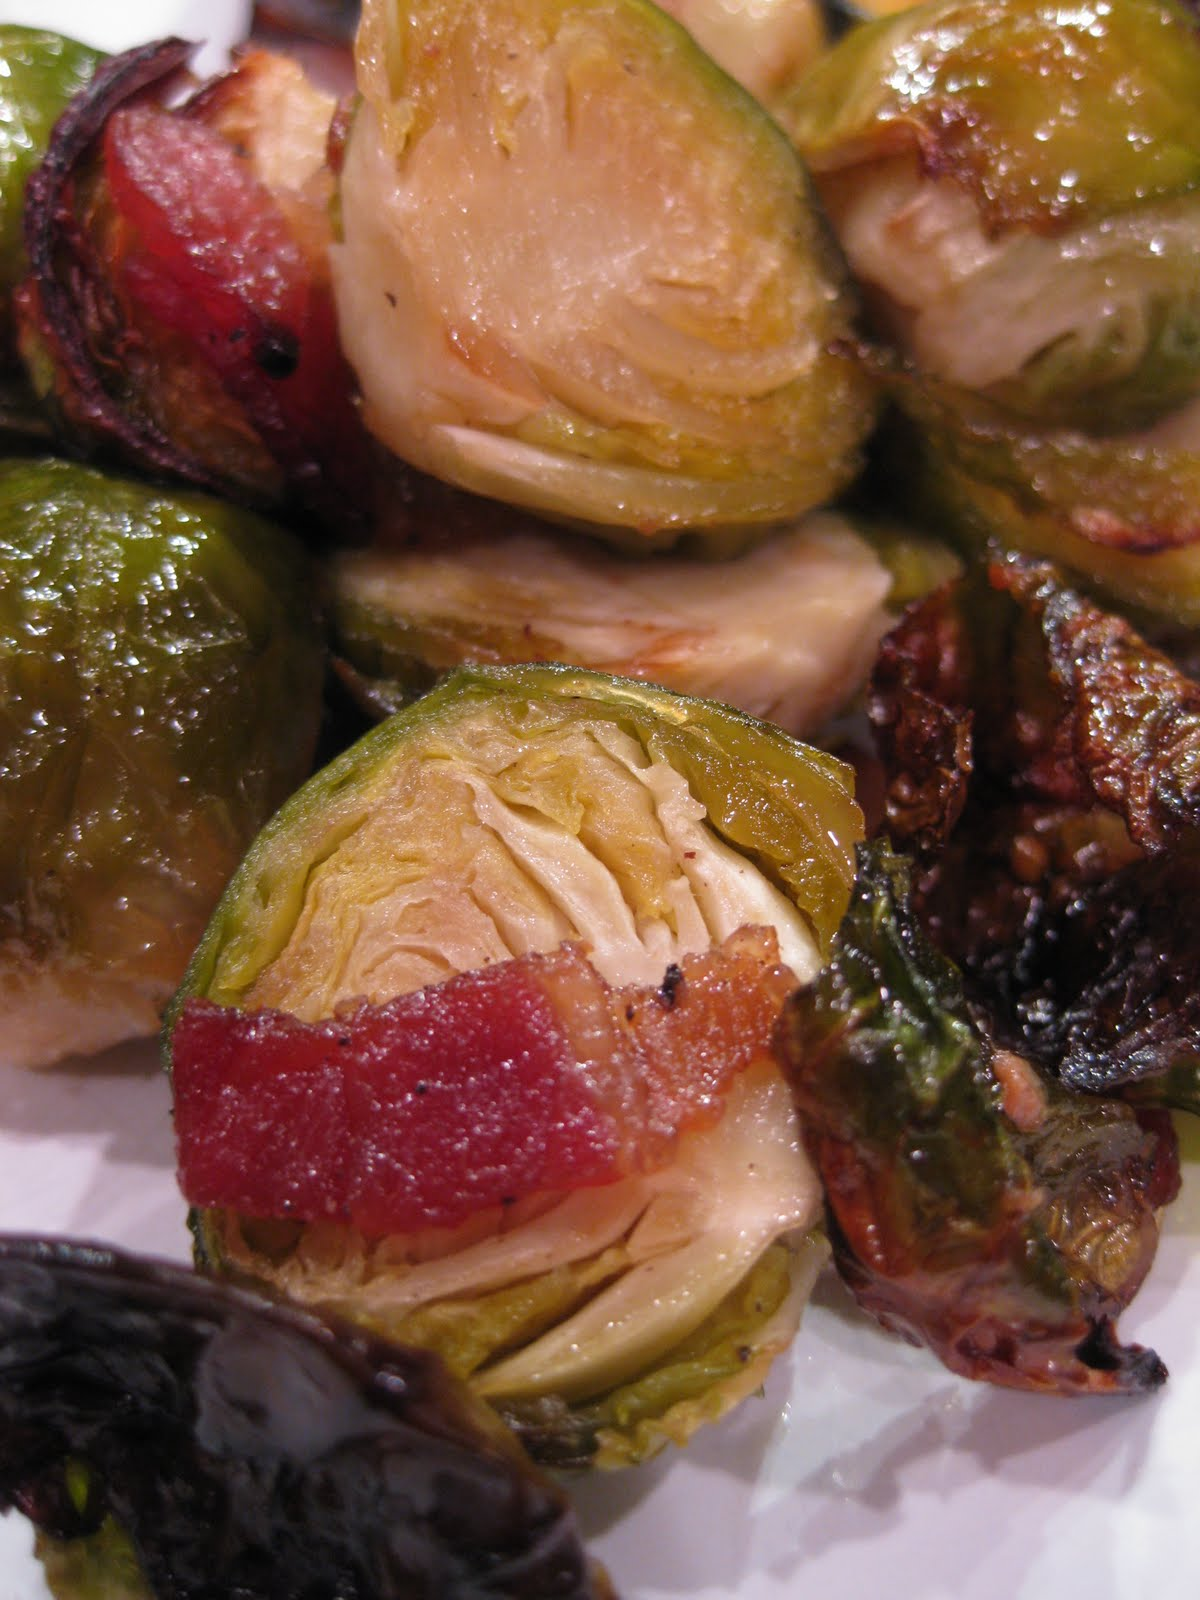 Dinner at Christina's: Brussel Sprouts with Bacon and Maple Syrup